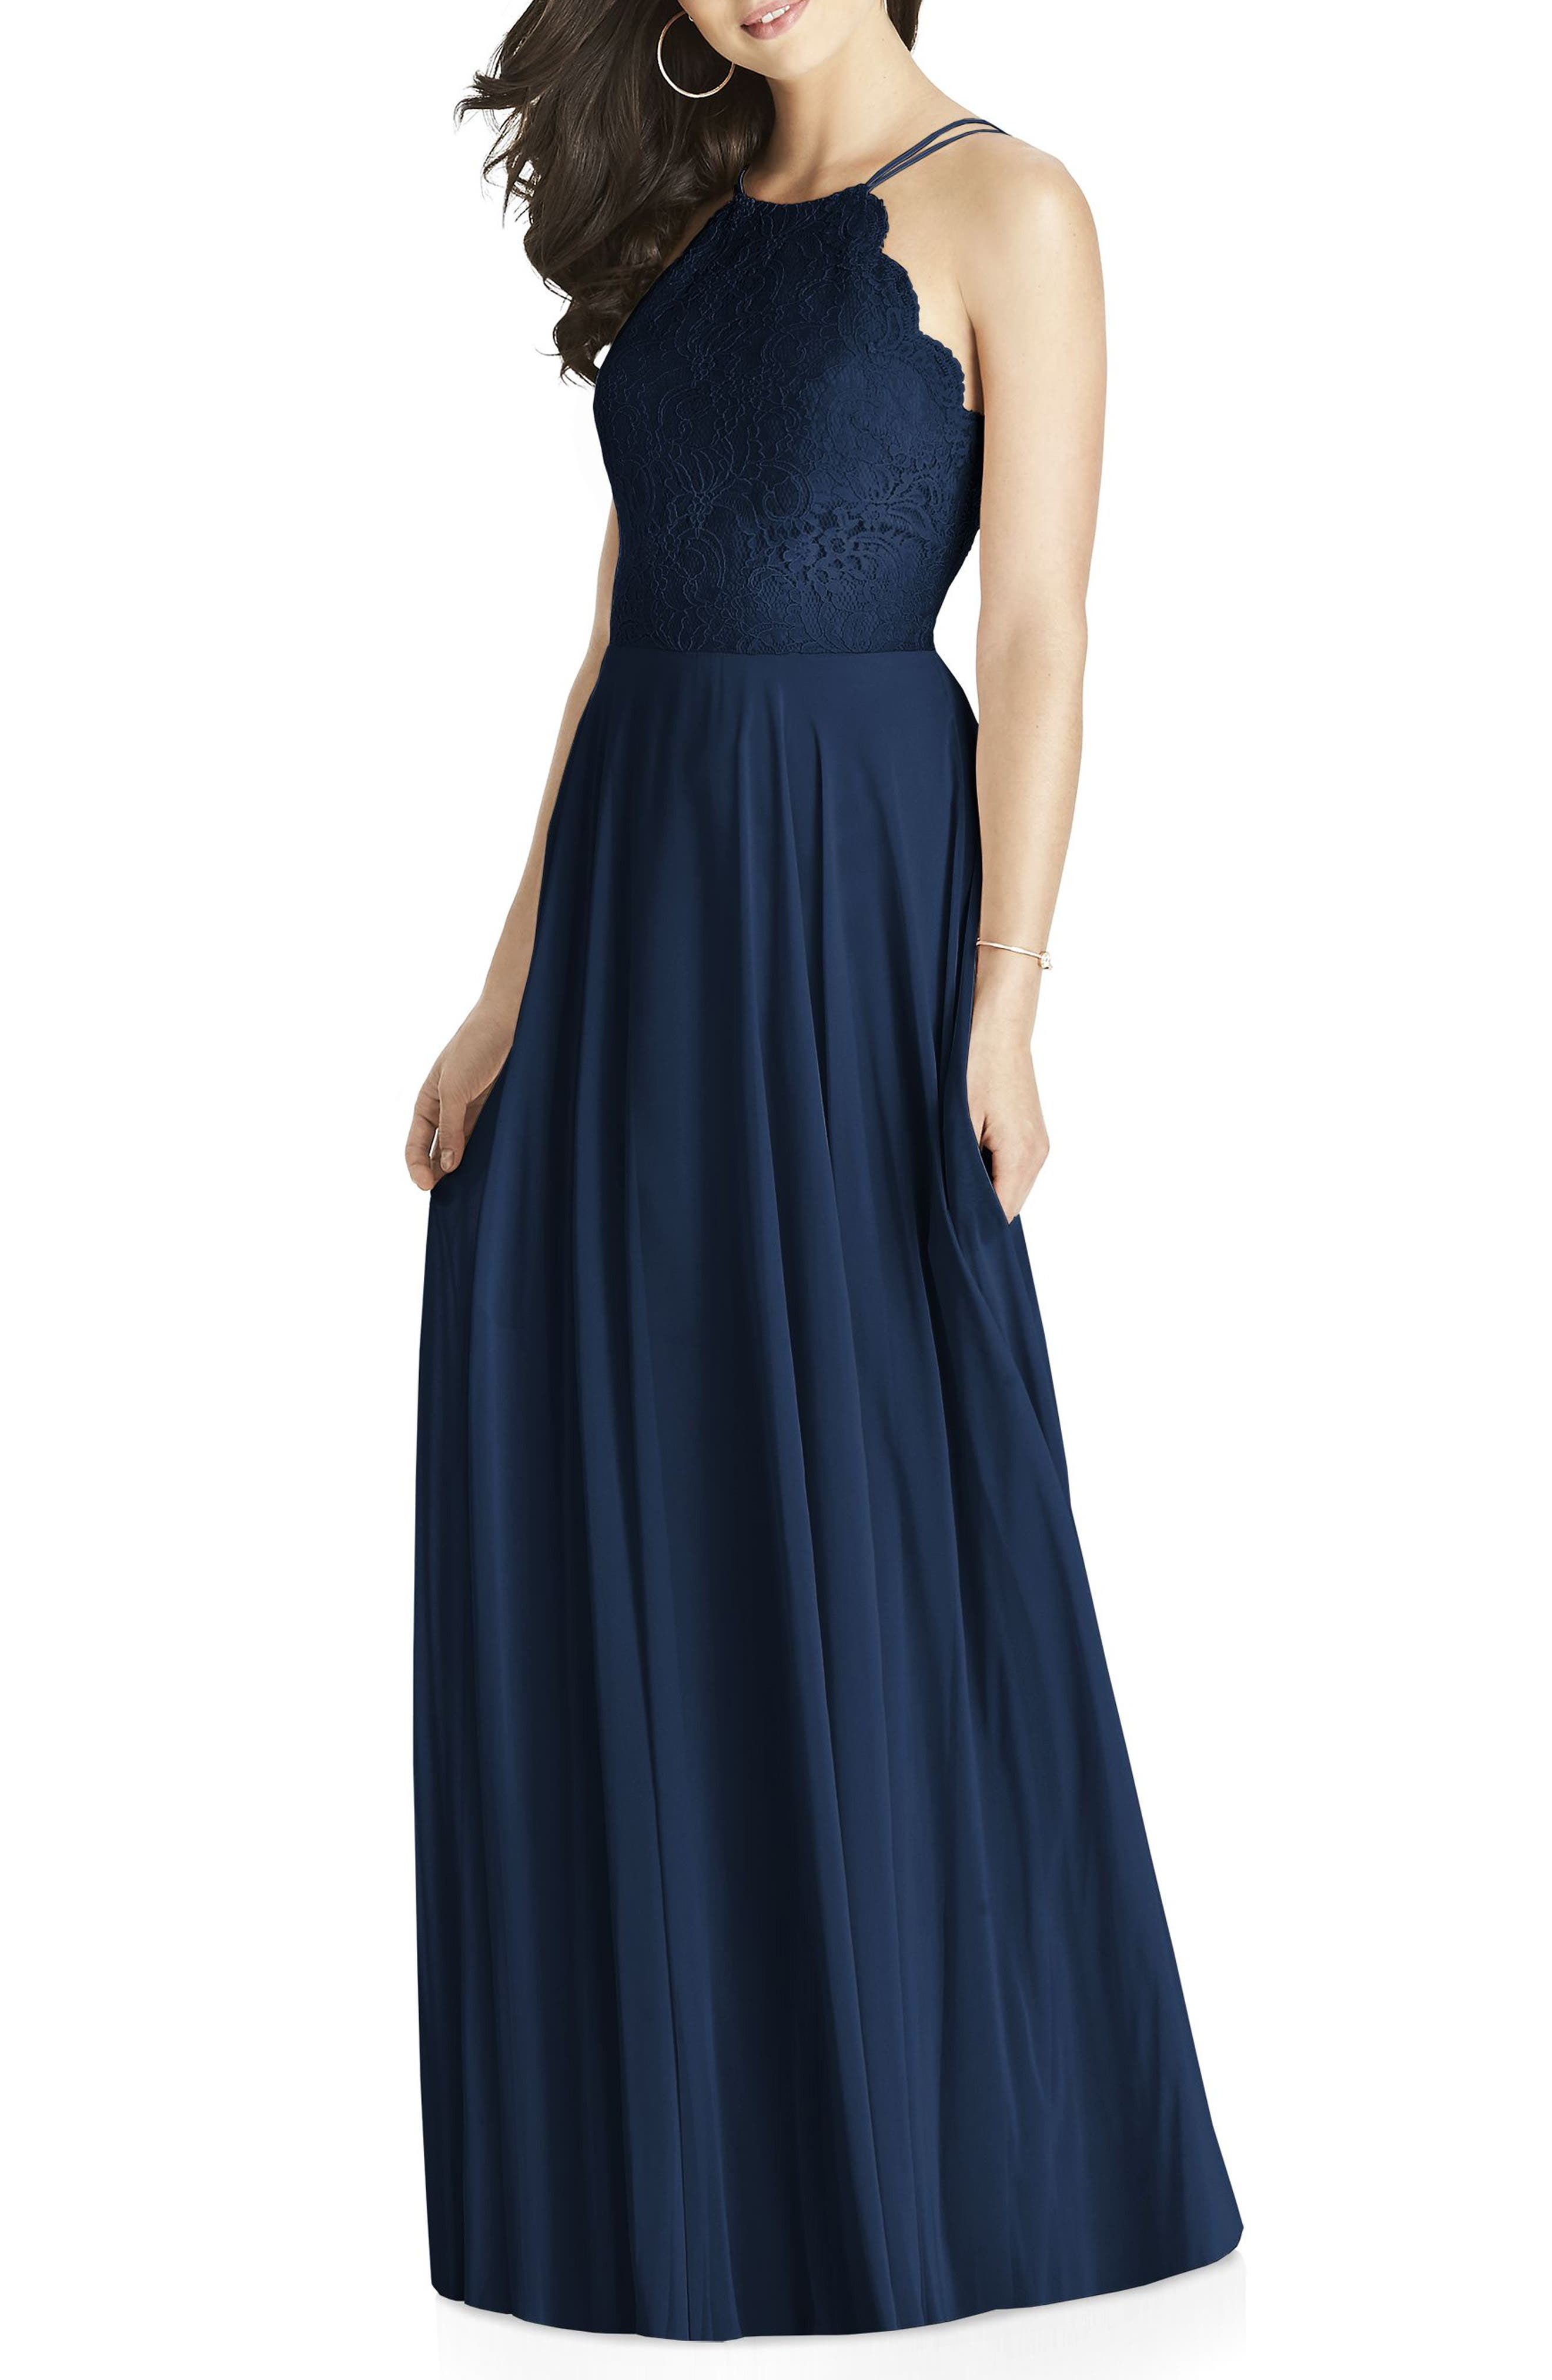 Lace bridesmaid wedding party dresses nordstrom dessy collection lace chiffon halter gown ombrellifo Choice Image